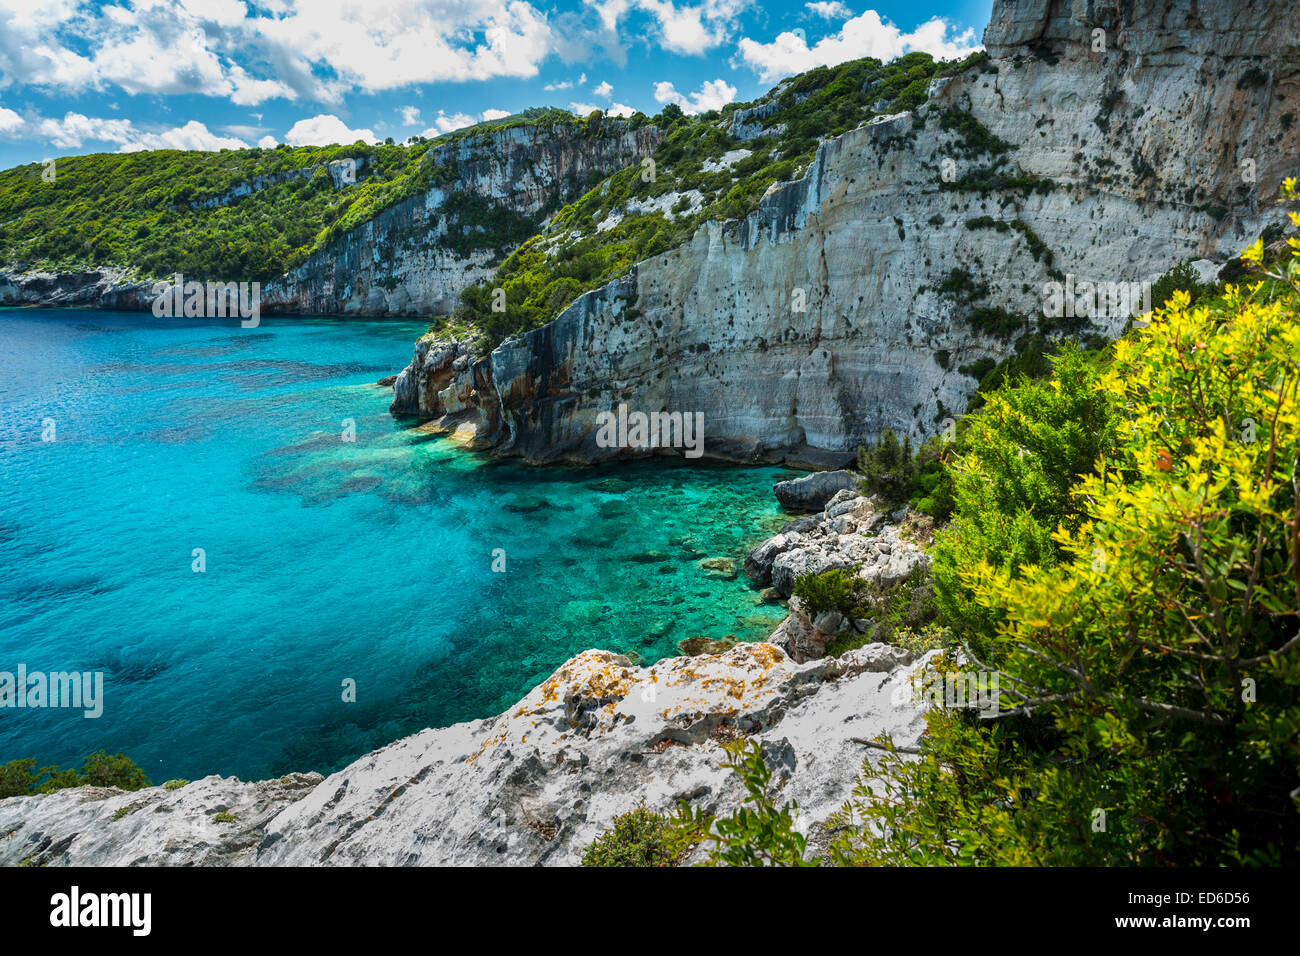 The blue caves and views of North Zakynthos, Greece - Stock Image